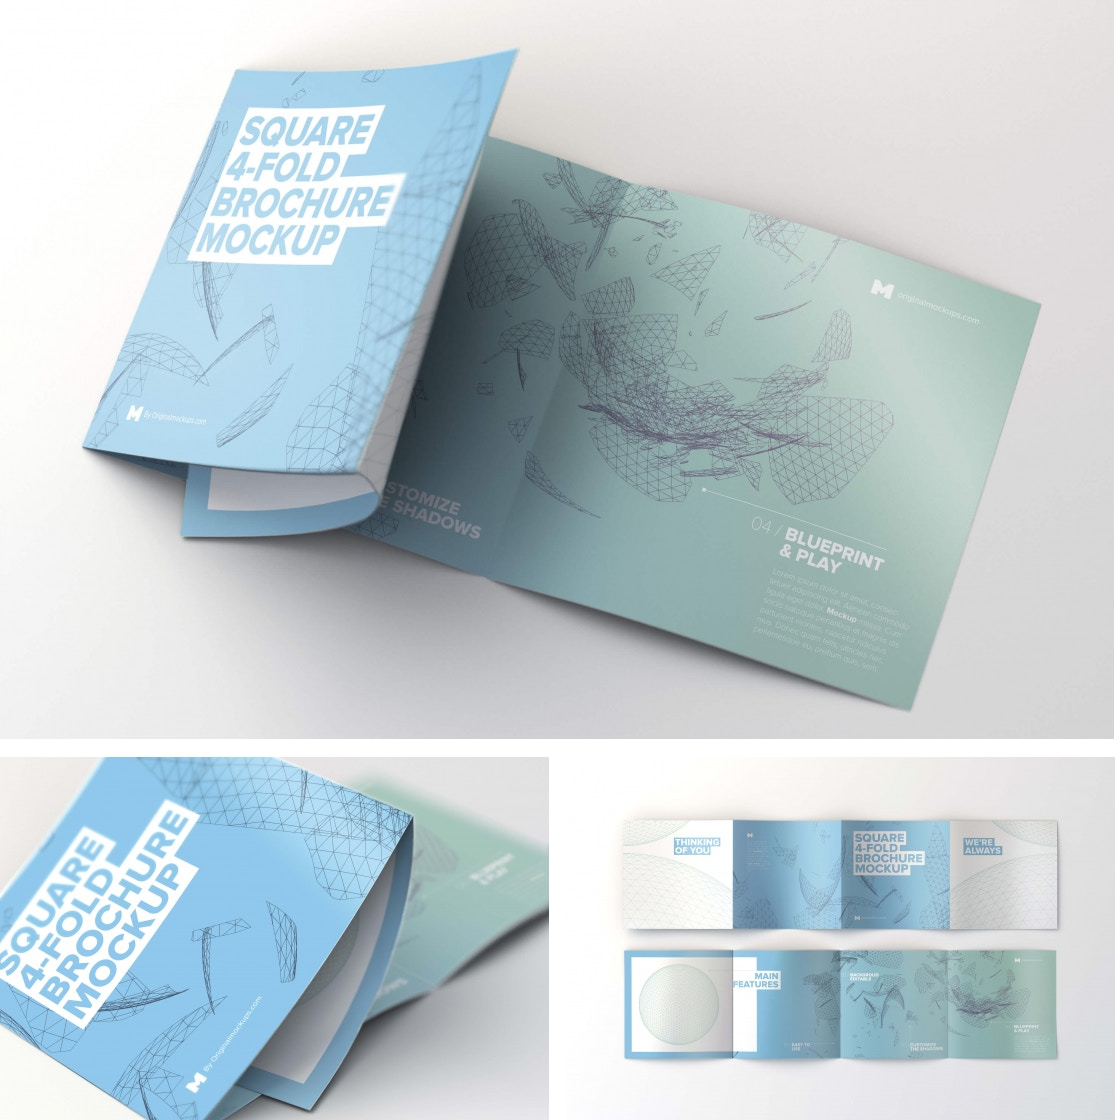 Square 4 Fold Brochure Mockups by Original Mockups on Original Mockups